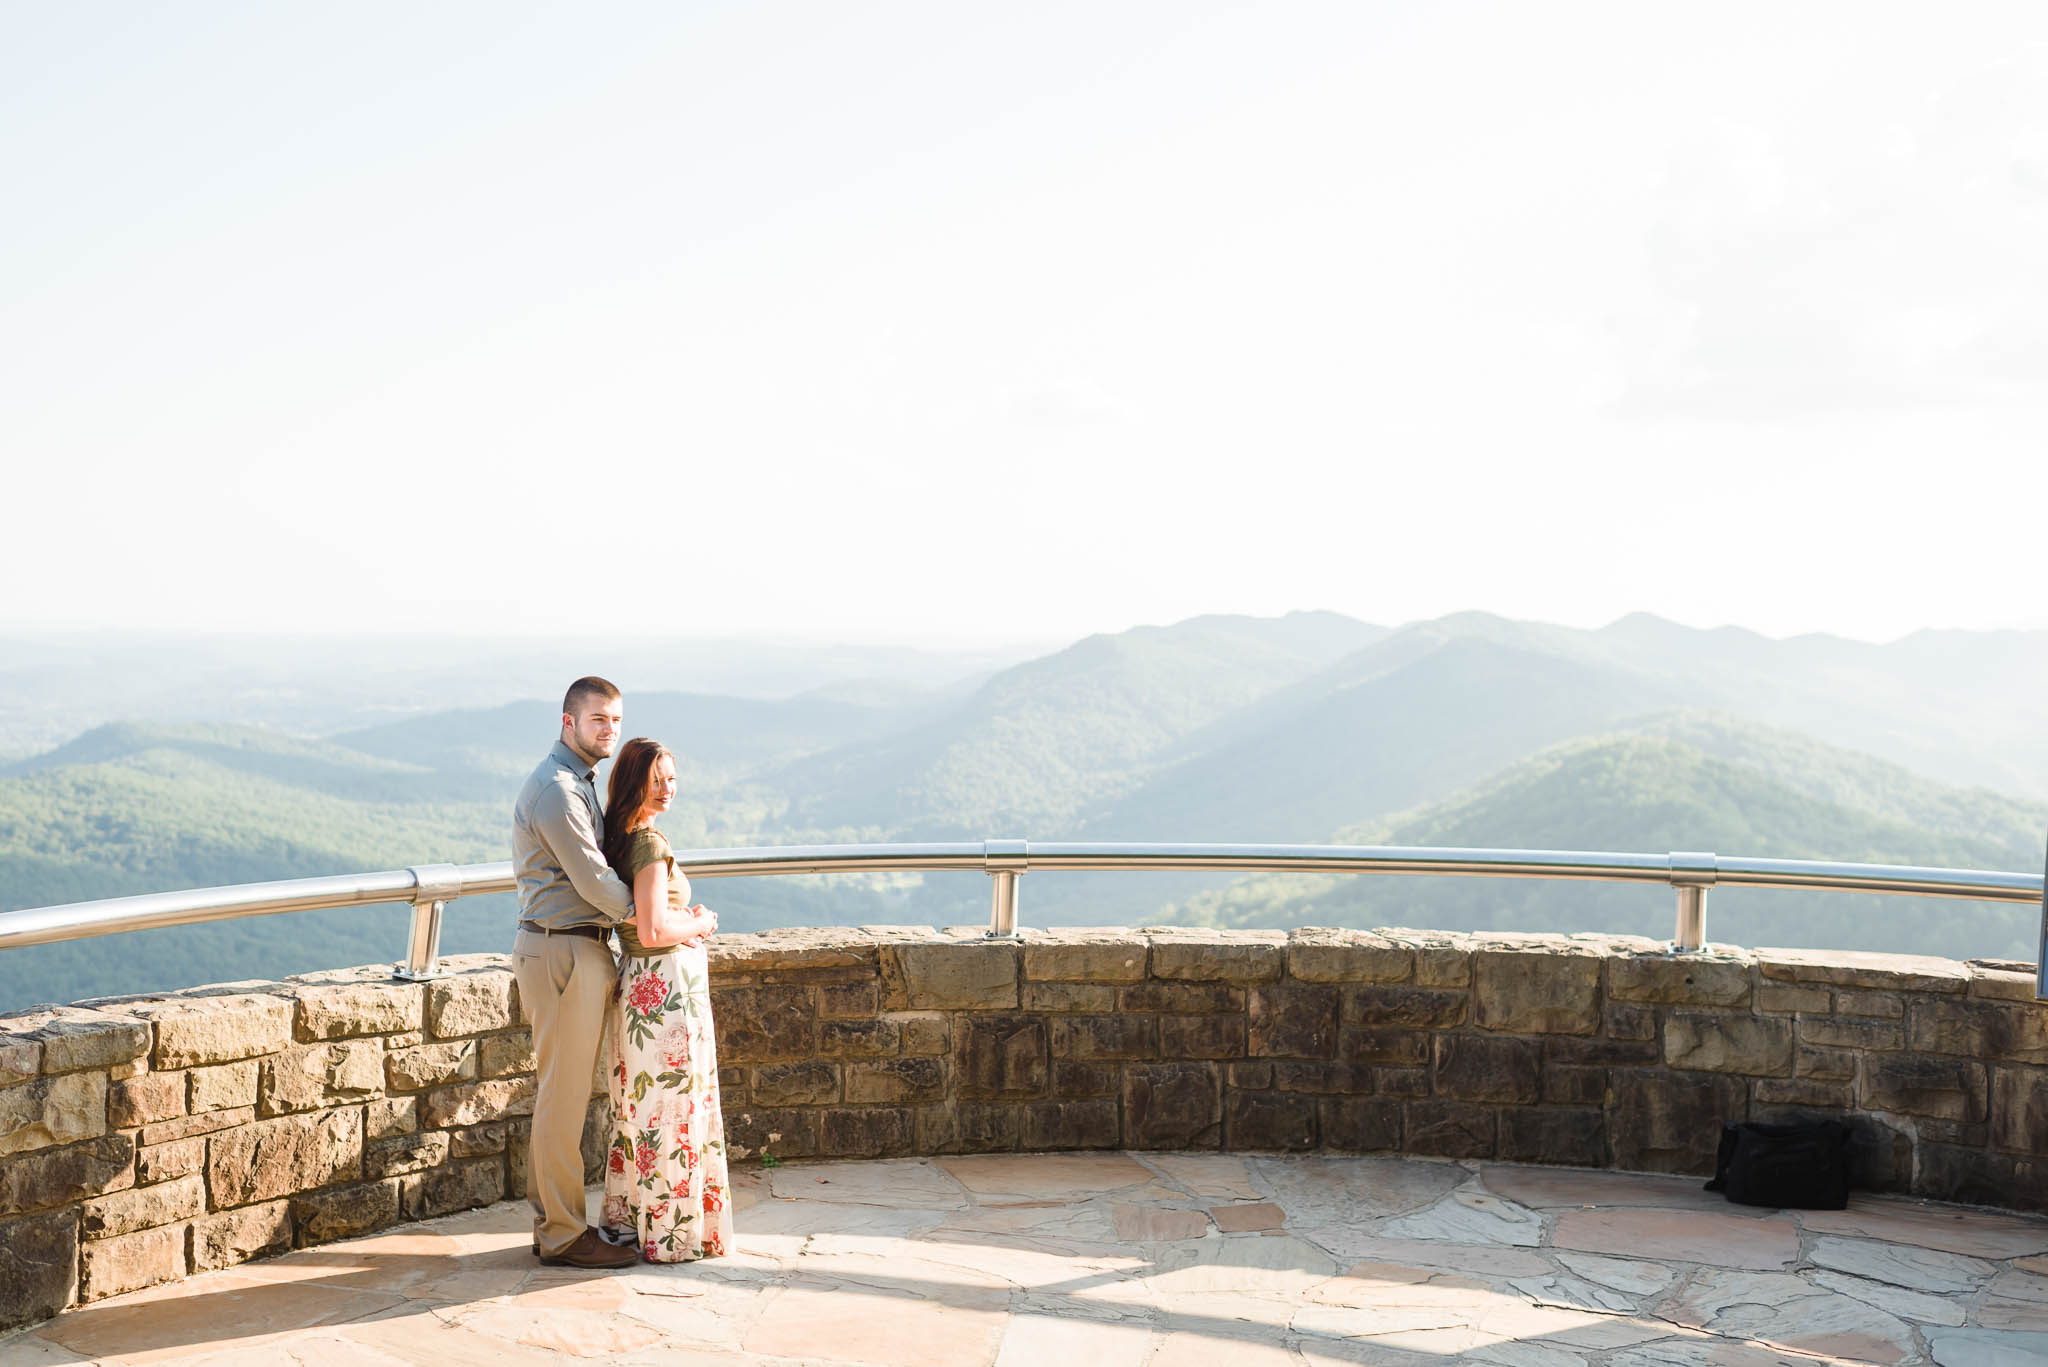 two soon to be married people enjoying the beautiful view from The Pinnacle overlook at Cumberland Gap TN